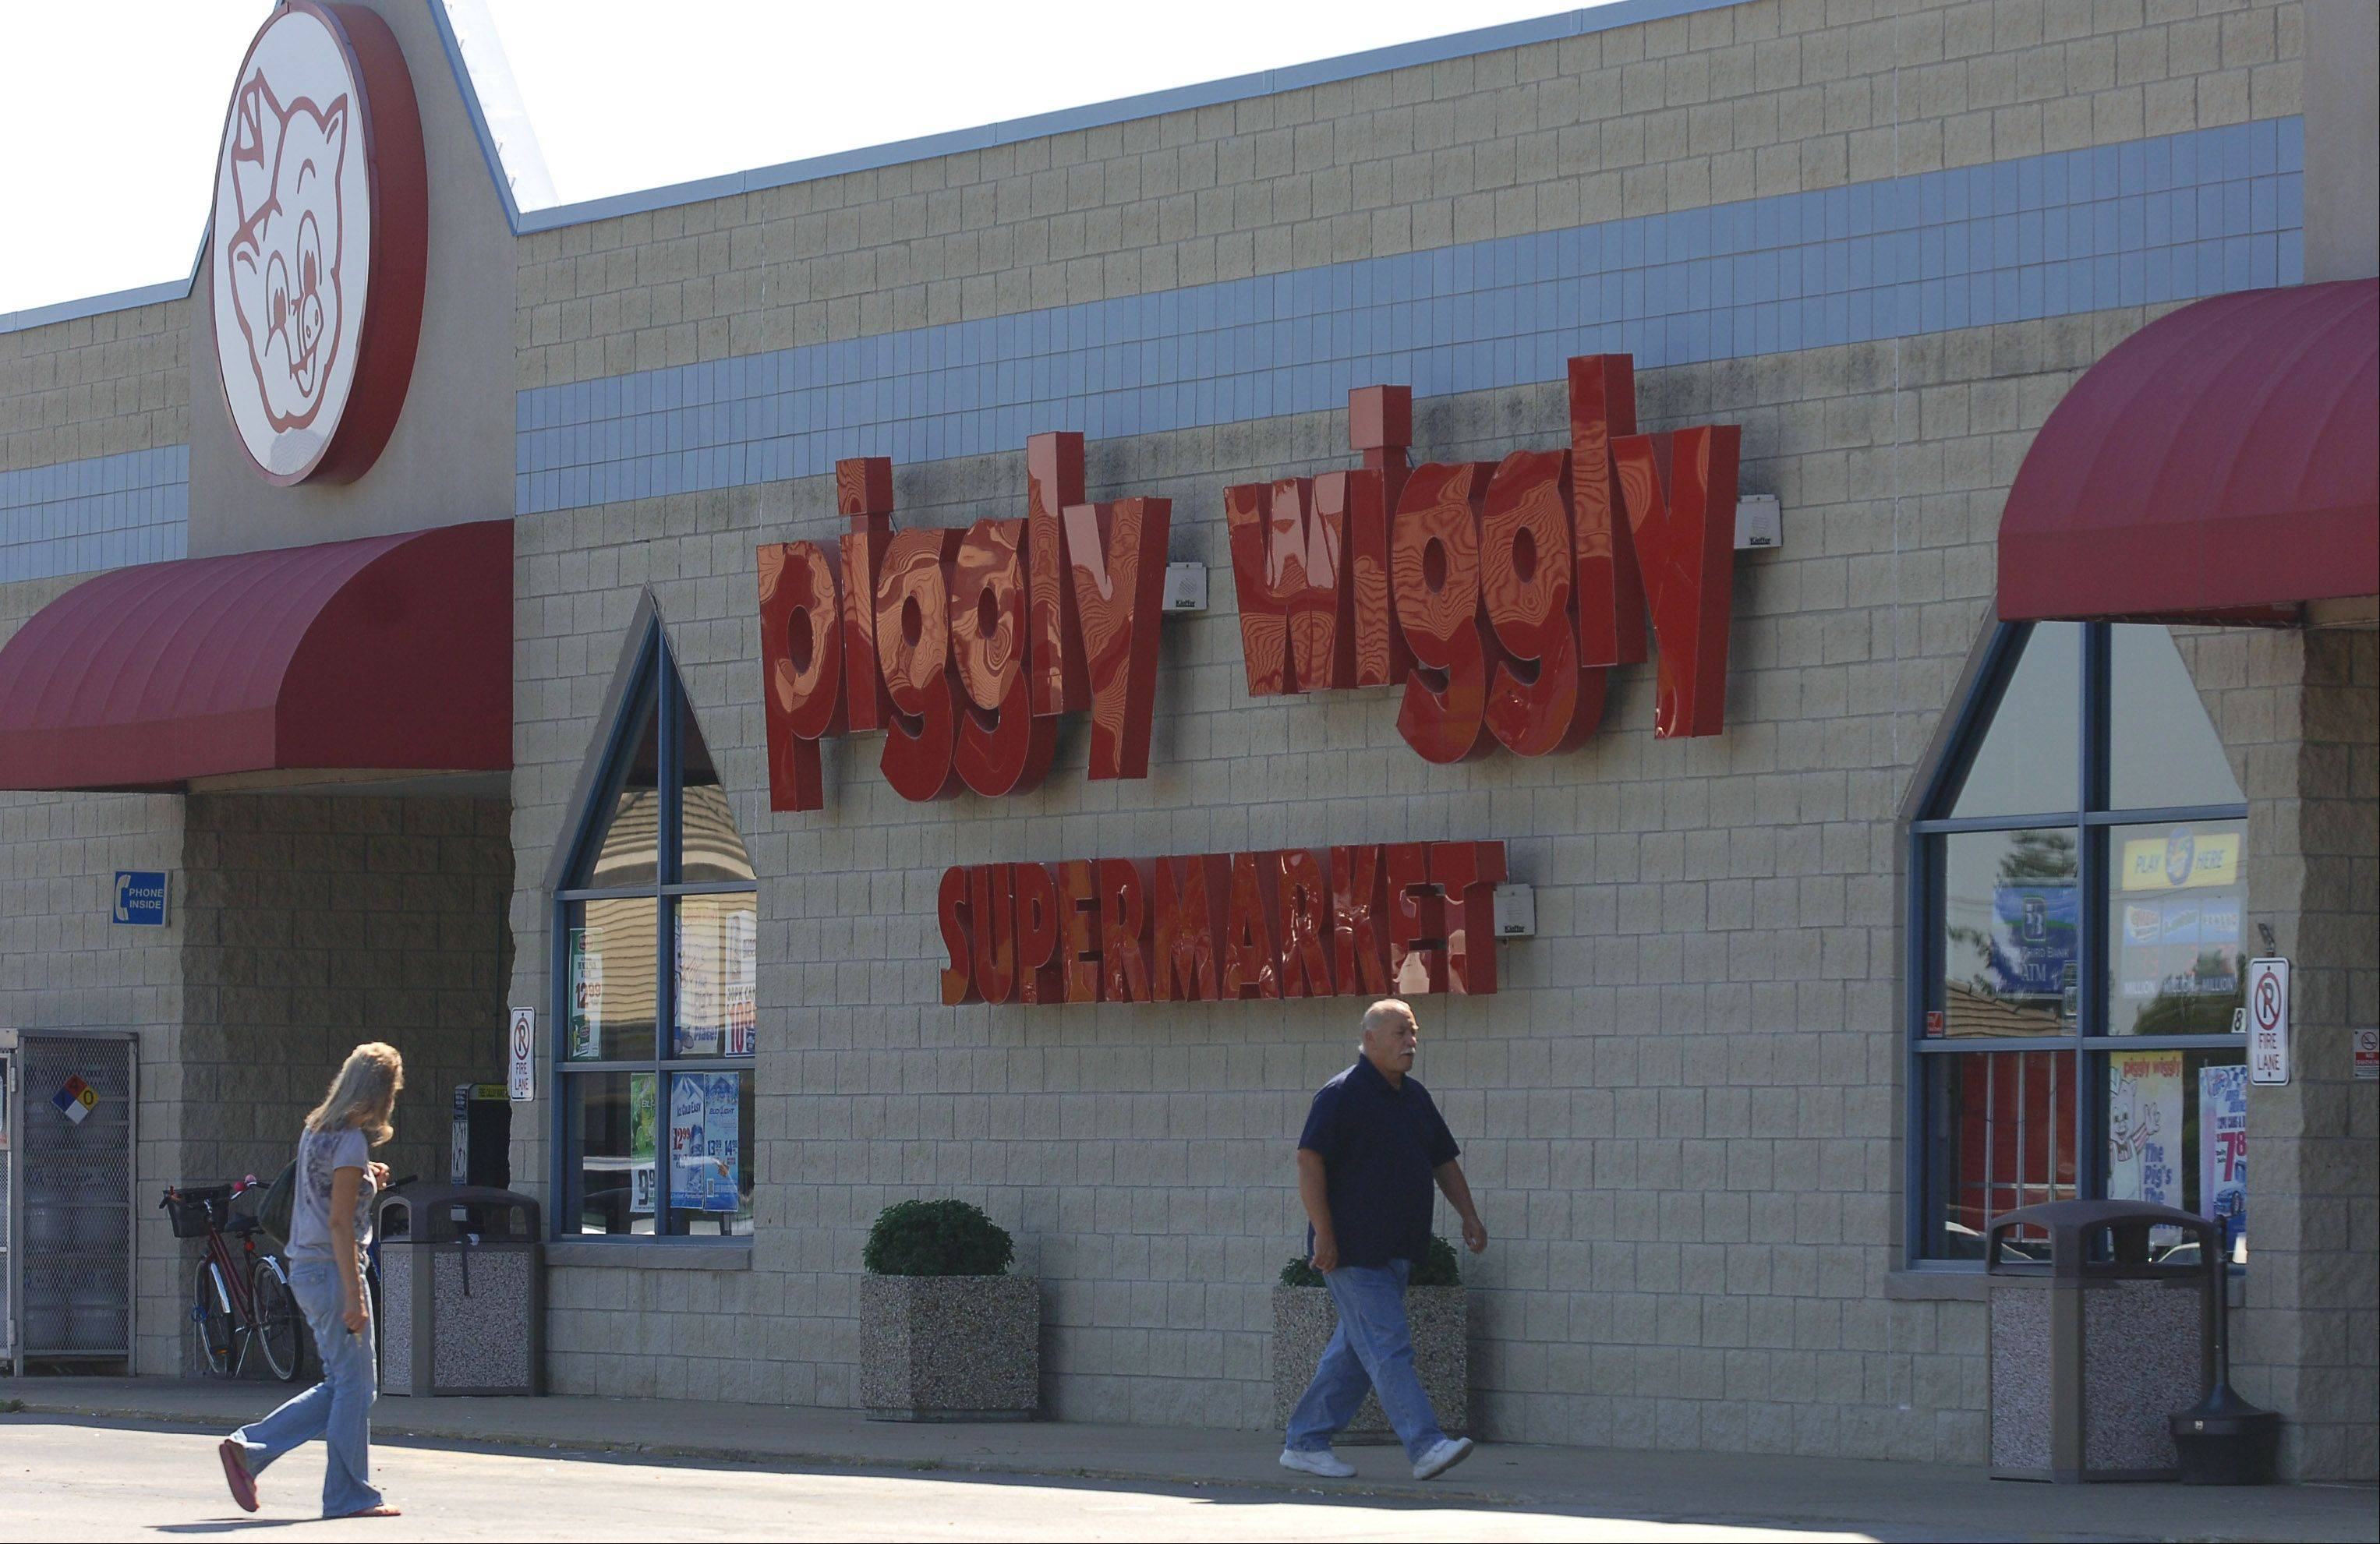 Grayslake's Piggly Wiggly is scheduled to close Nov. 3 because of failed lease negotiations between the supermarket and its landlord.